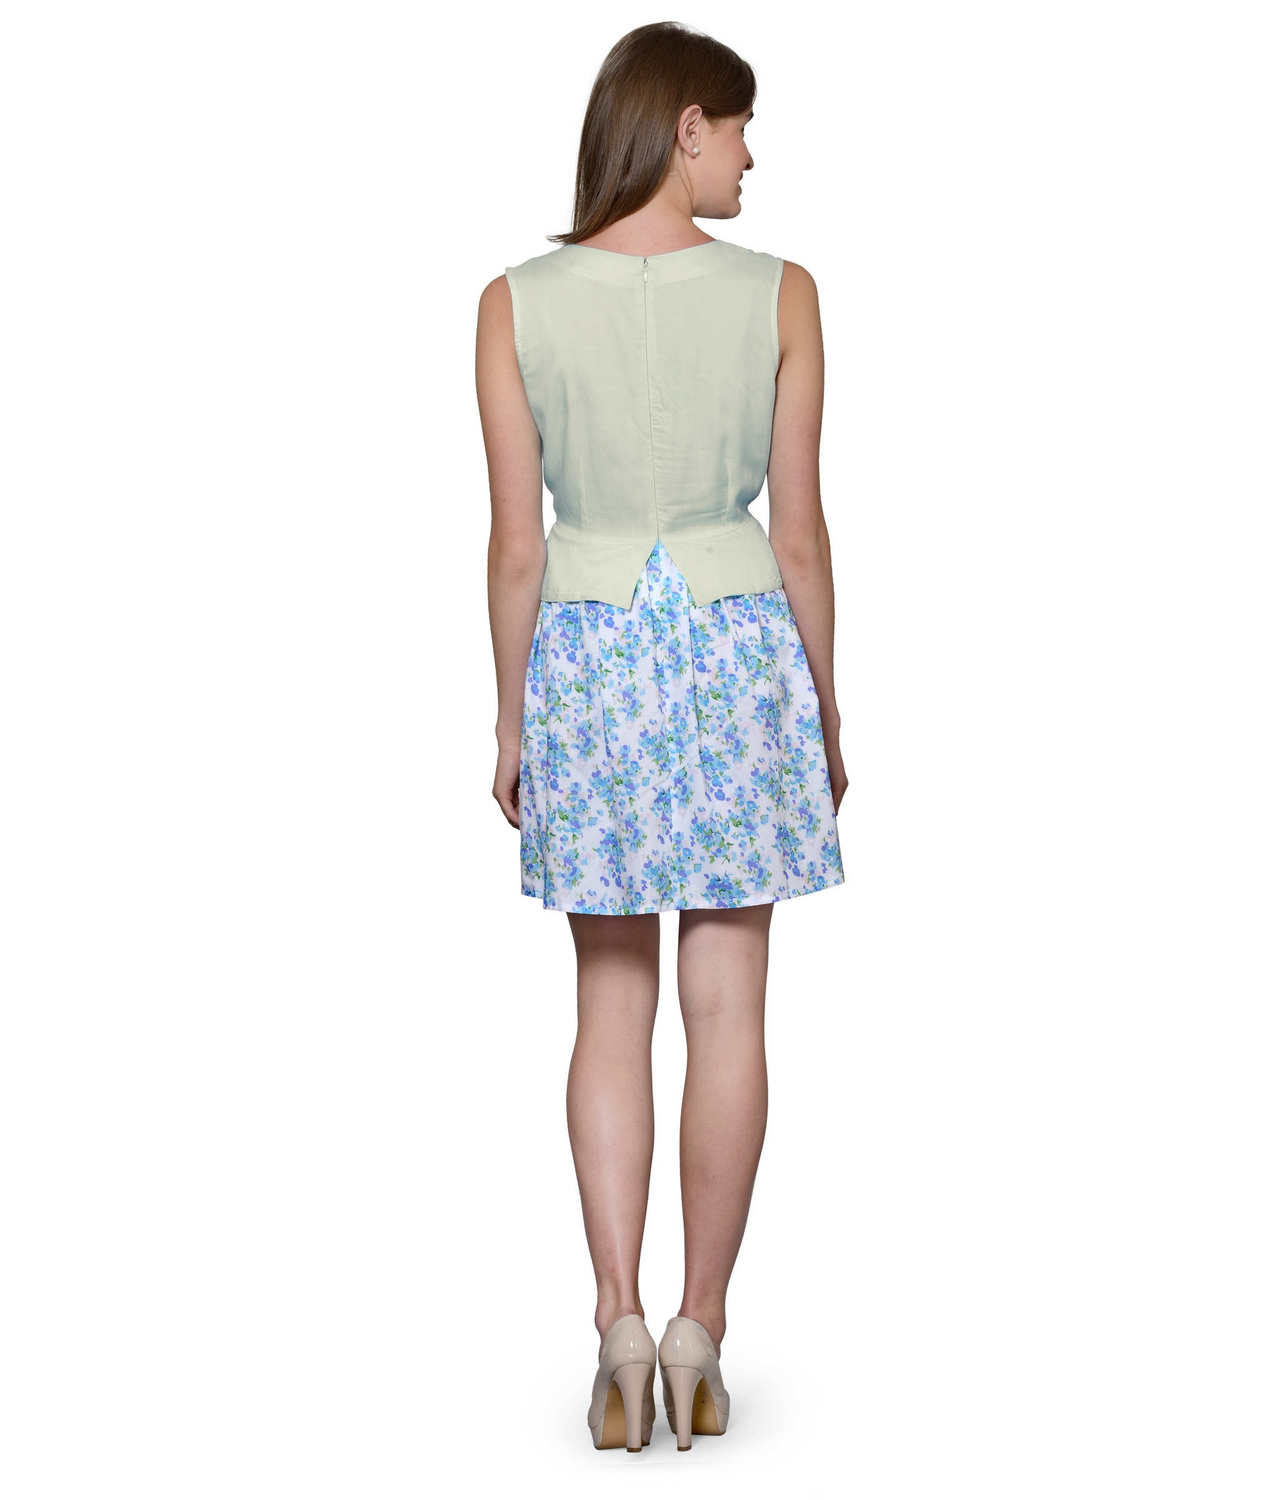 Top and Skirt Style Cocktail Mini Dress in Off-White:Multicolour